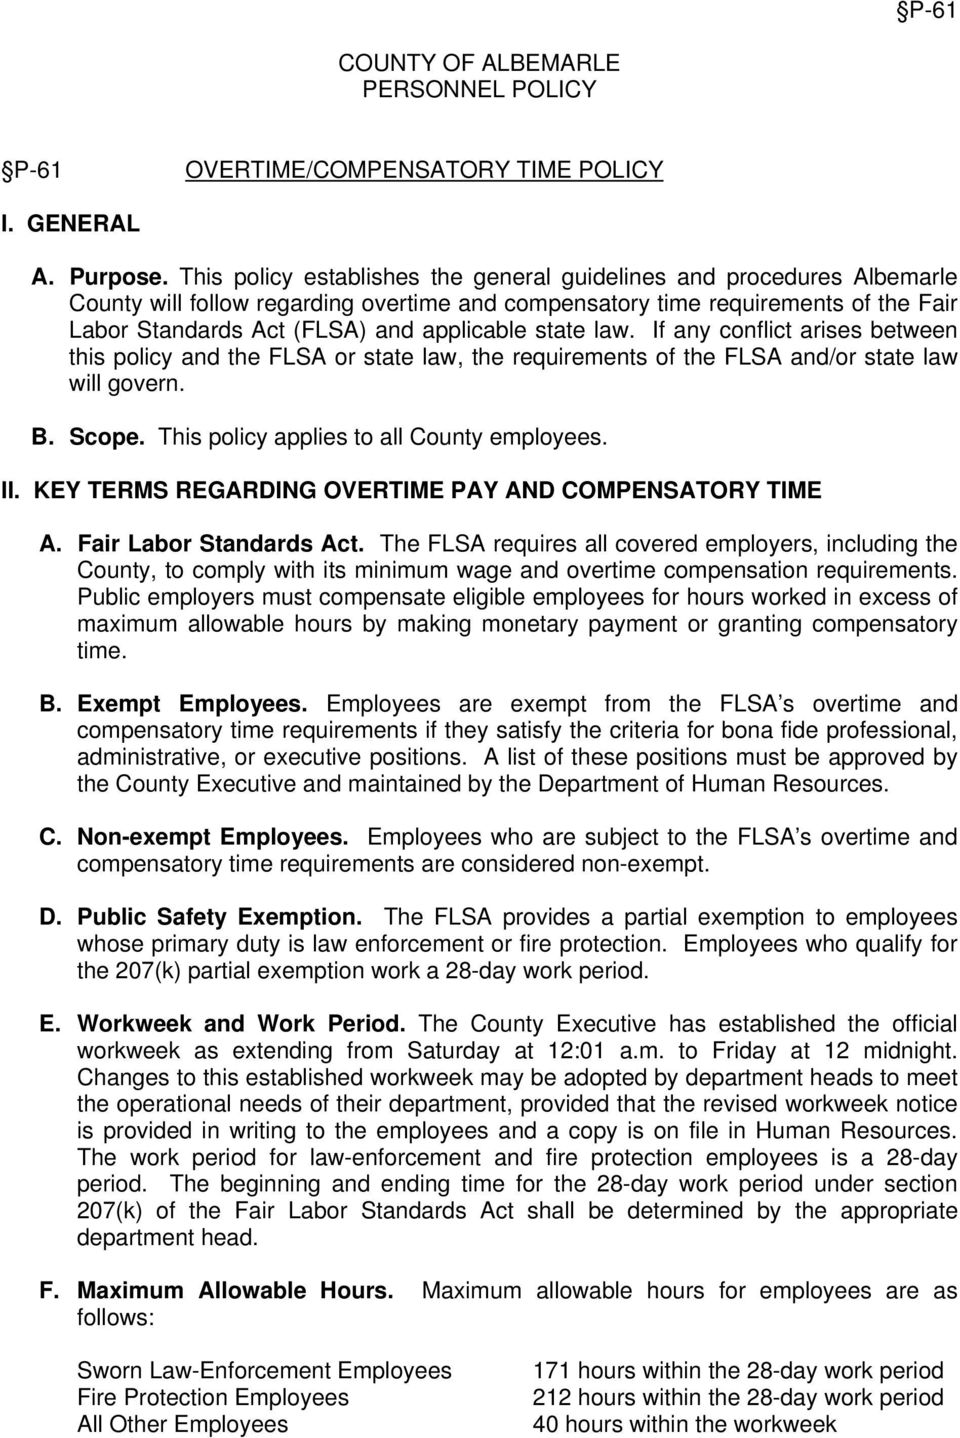 state law. If any conflict arises between this policy and the FLSA or state law, the requirements of the FLSA and/or state law will govern. B. Scope. This policy applies to all County employees. II.